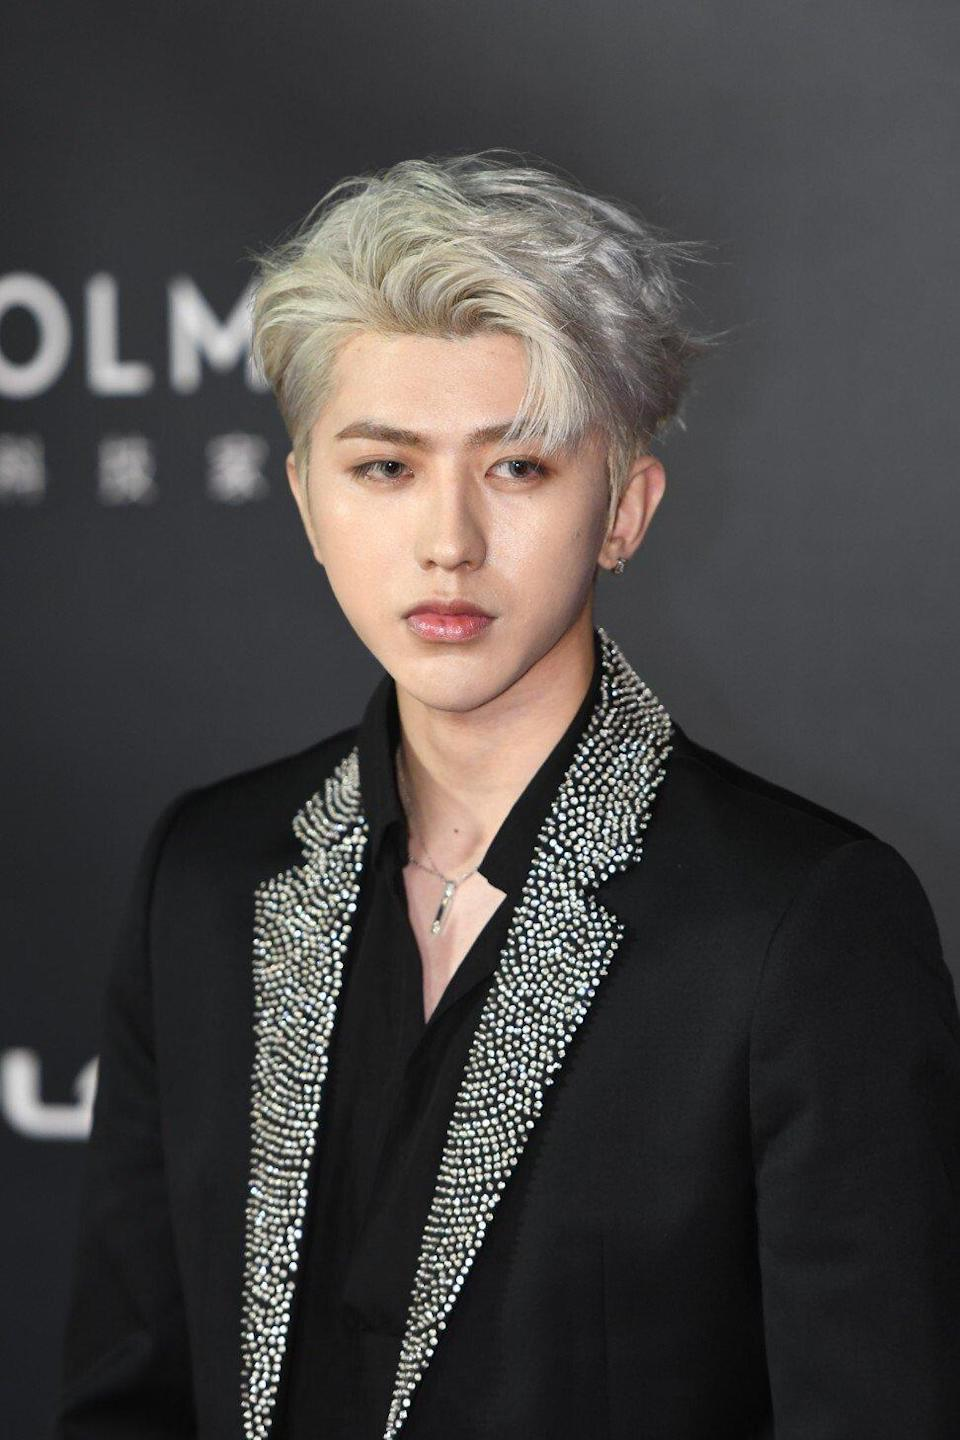 Cai was criticised in Chinese for releasing only half of his album in April. Photo: Getty Images